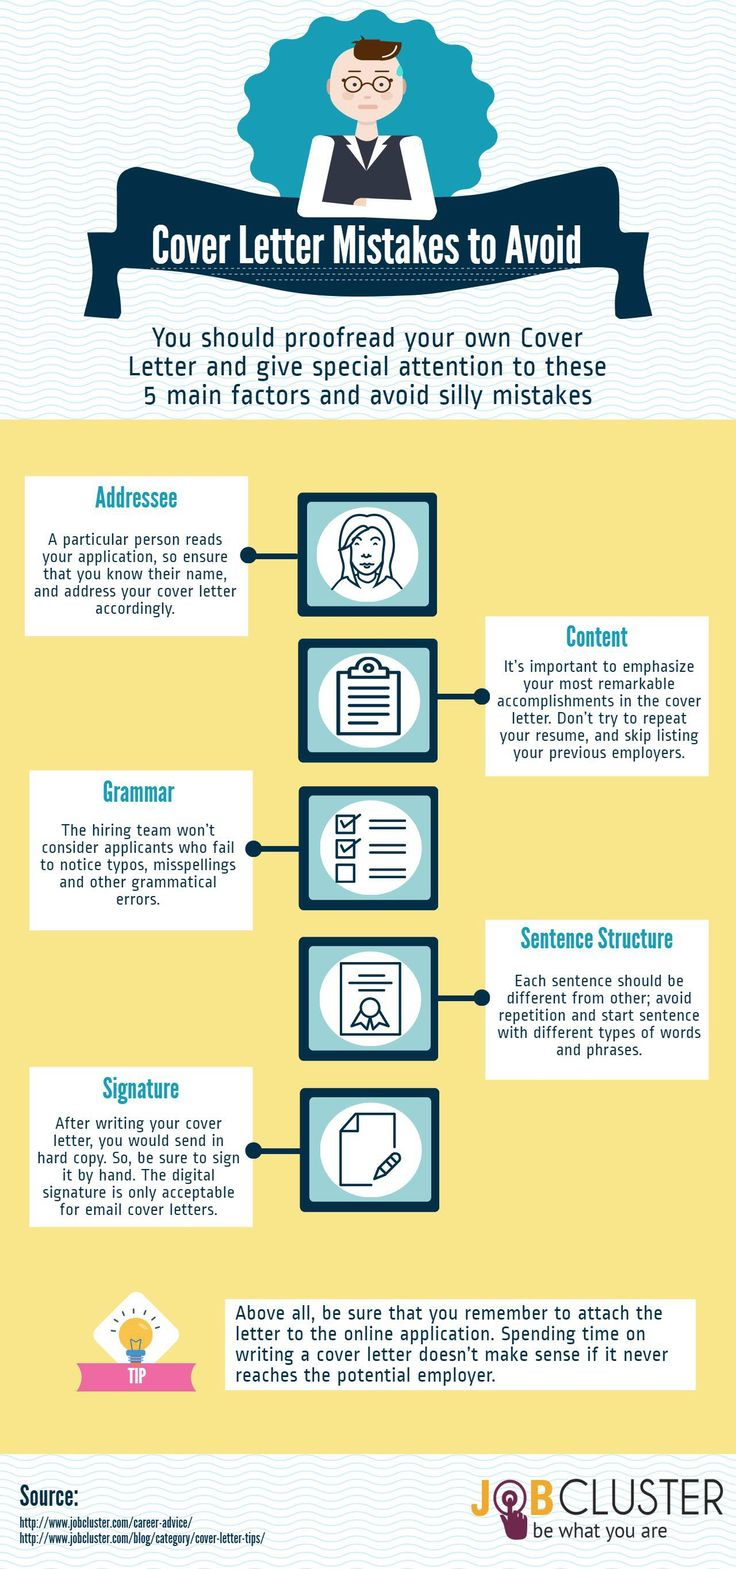 best images about cover letter tips here we have shared our blog content which are created to help people for serving knowledge regarding job interview and their resume